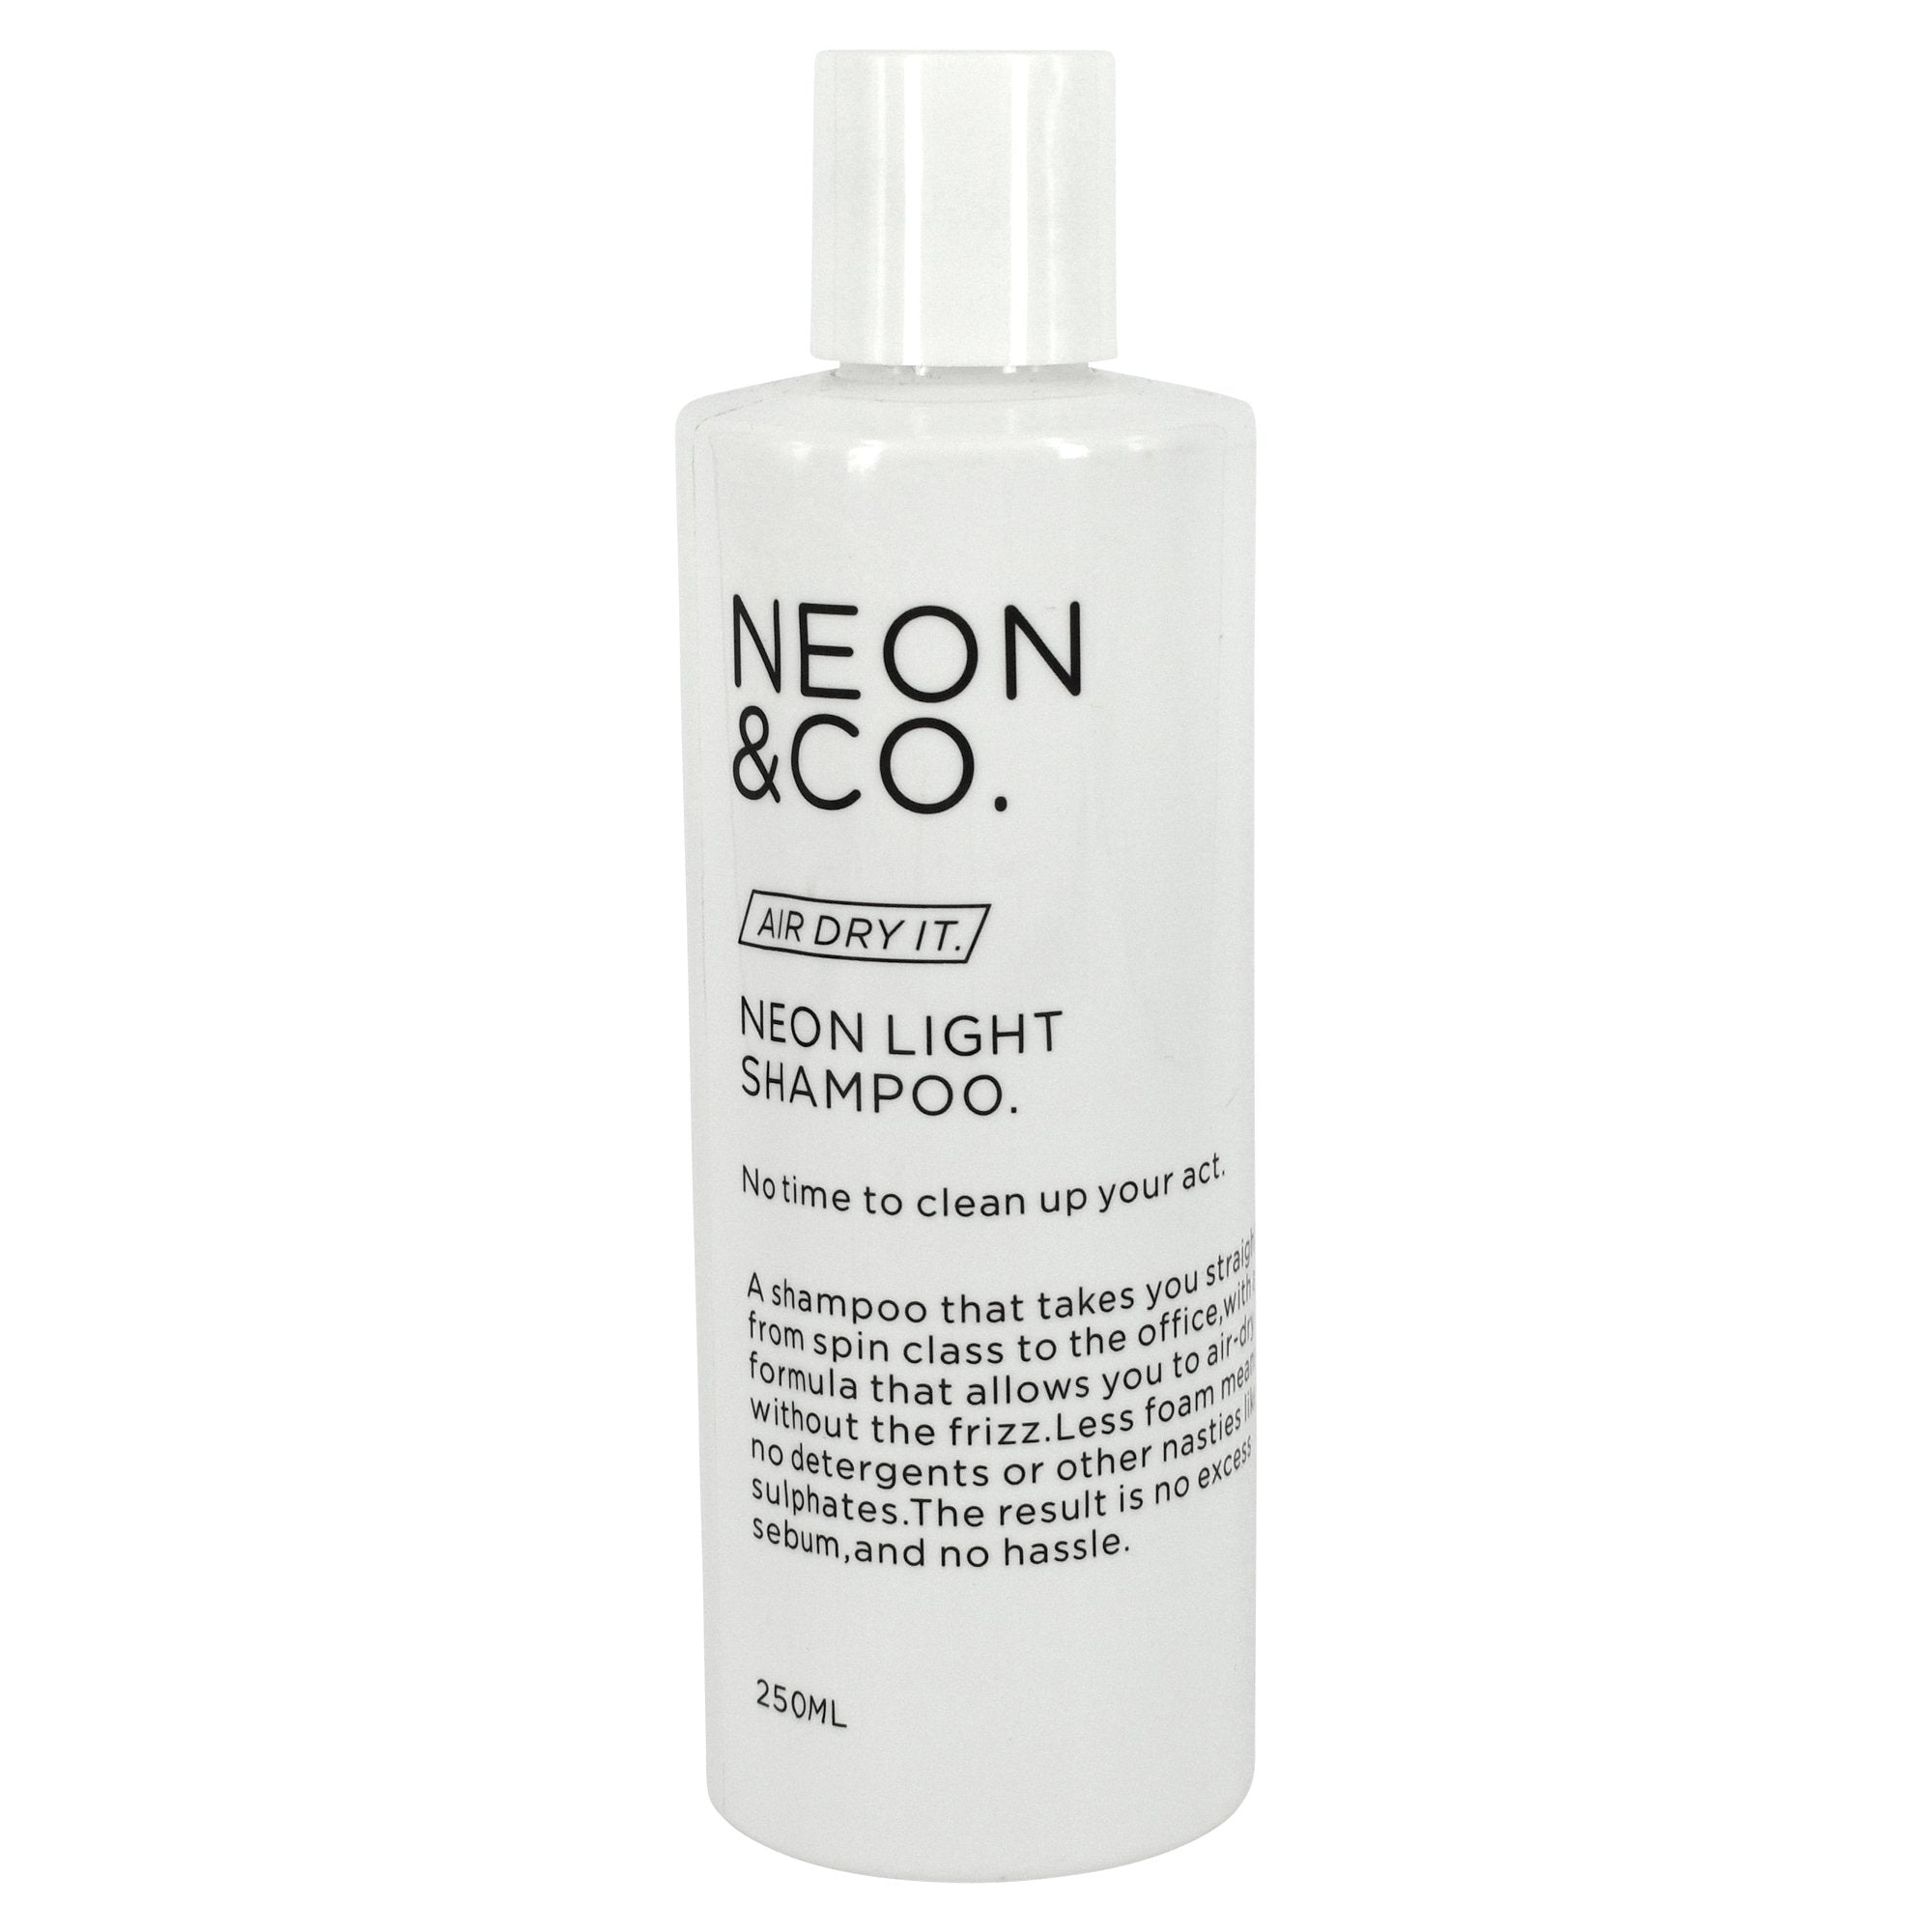 Neon & Co. ☁️  'Air dry it' Shampoo 250ML